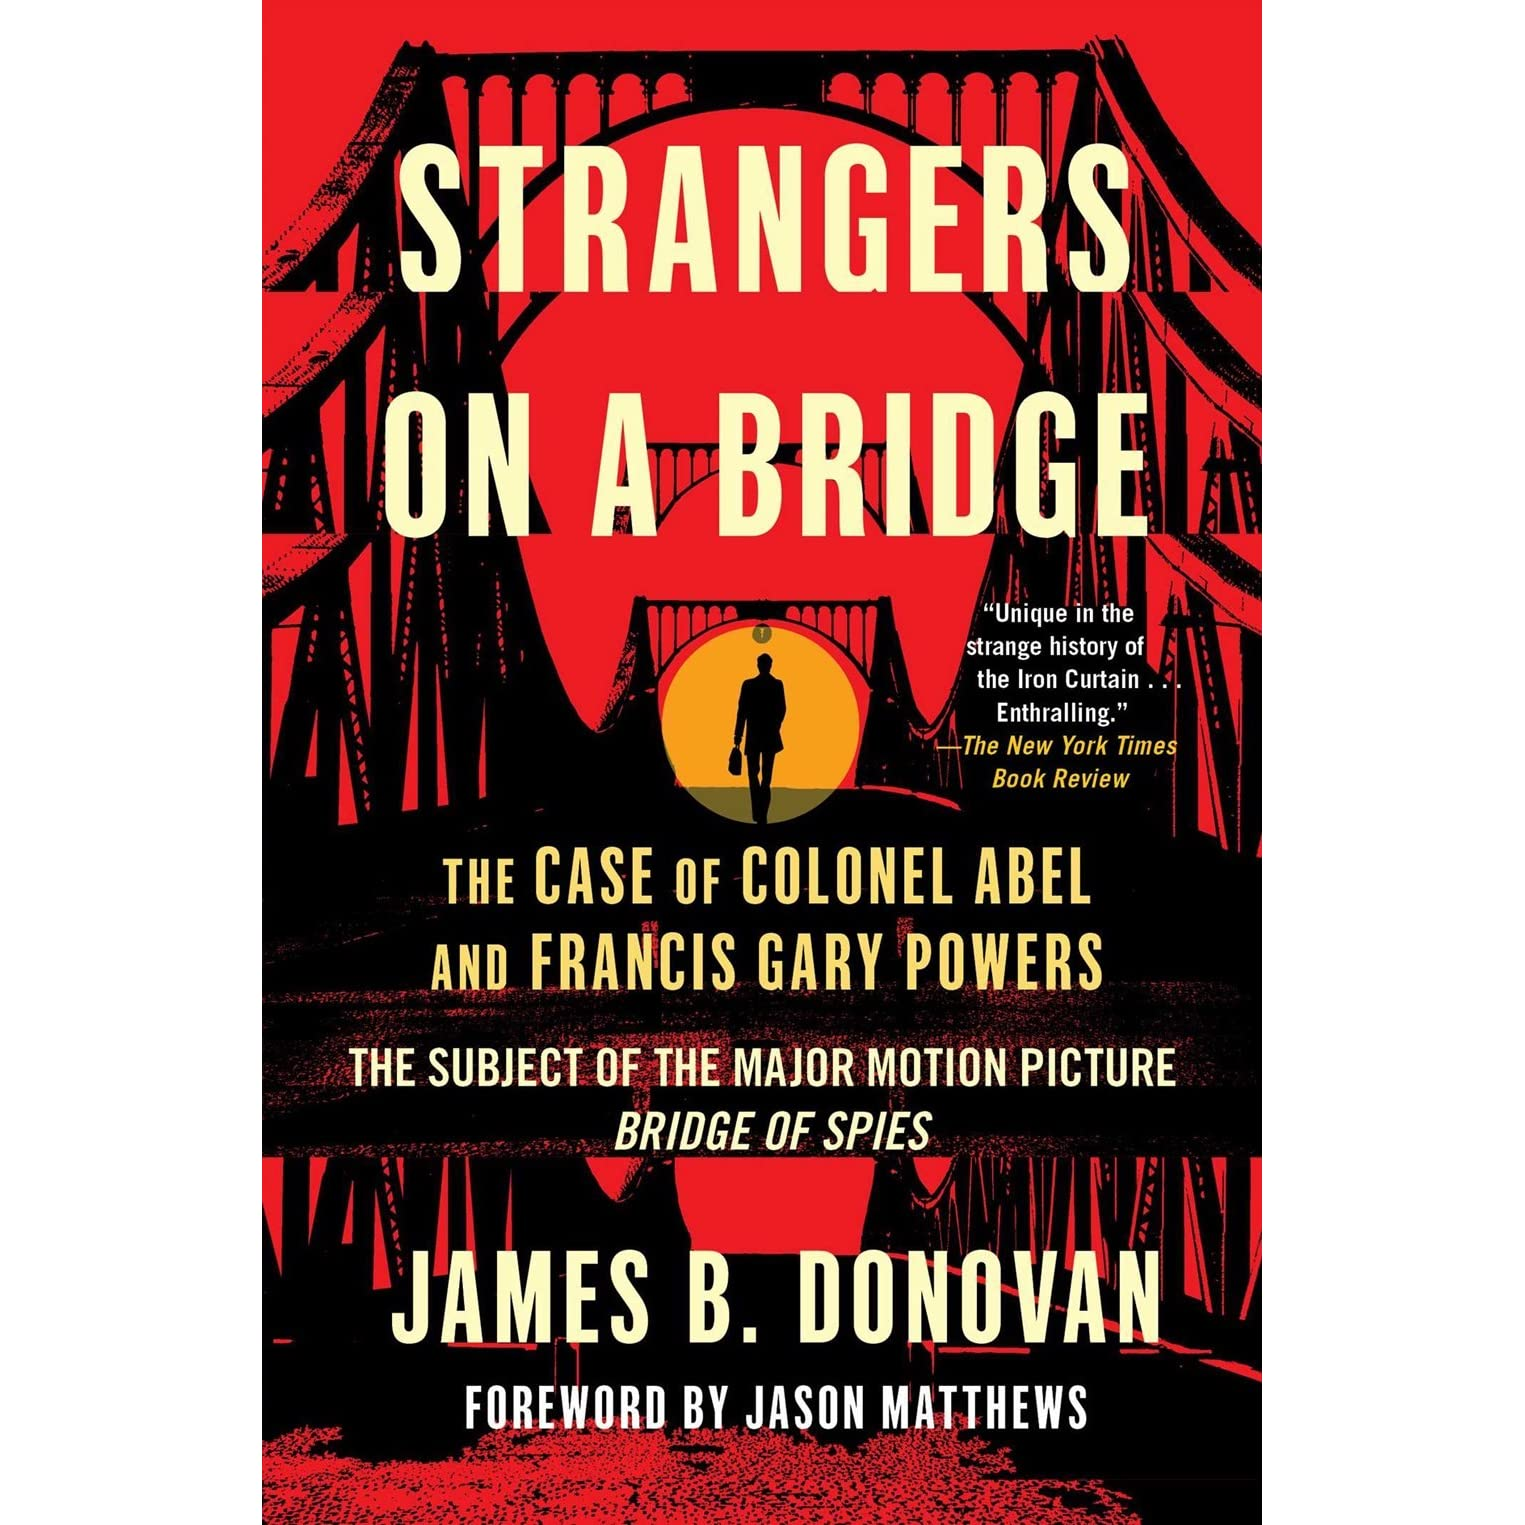 Download Strangers On A Bridge The Case Of Colonel Abel And Francis Gary Powers By James B Donovan